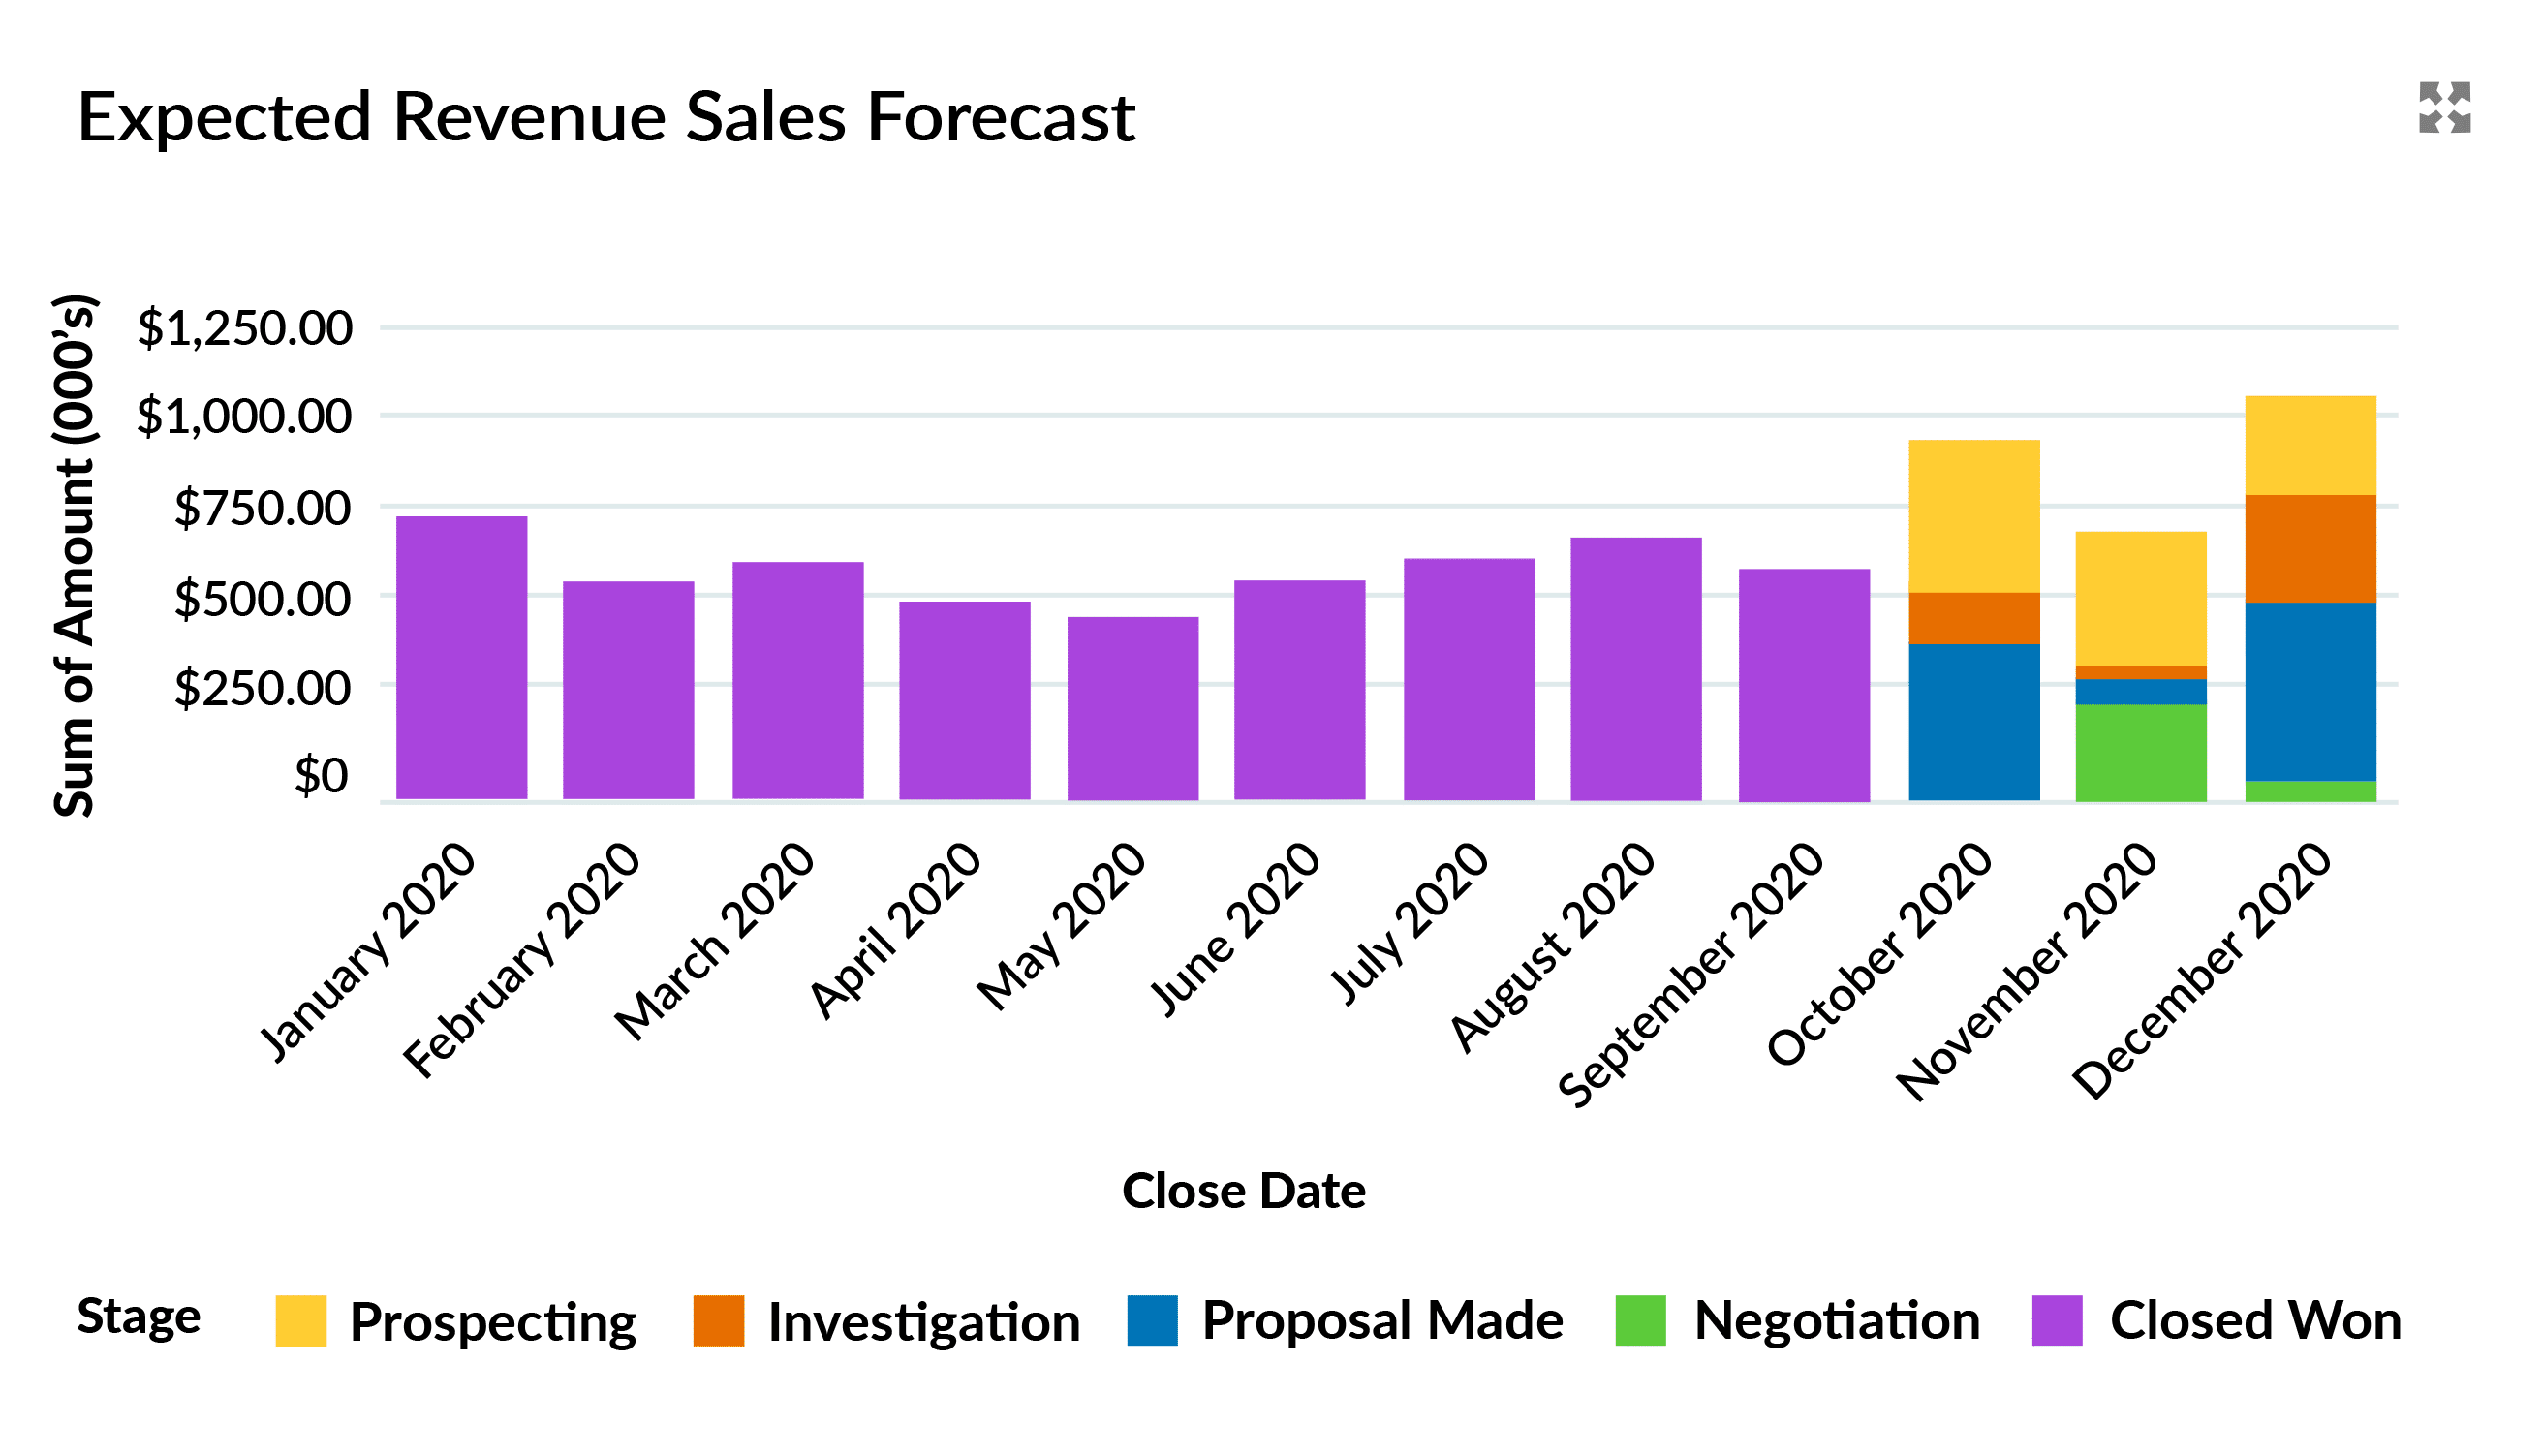 A chart showing Expected Revenue this year including previous Closed Won revenue